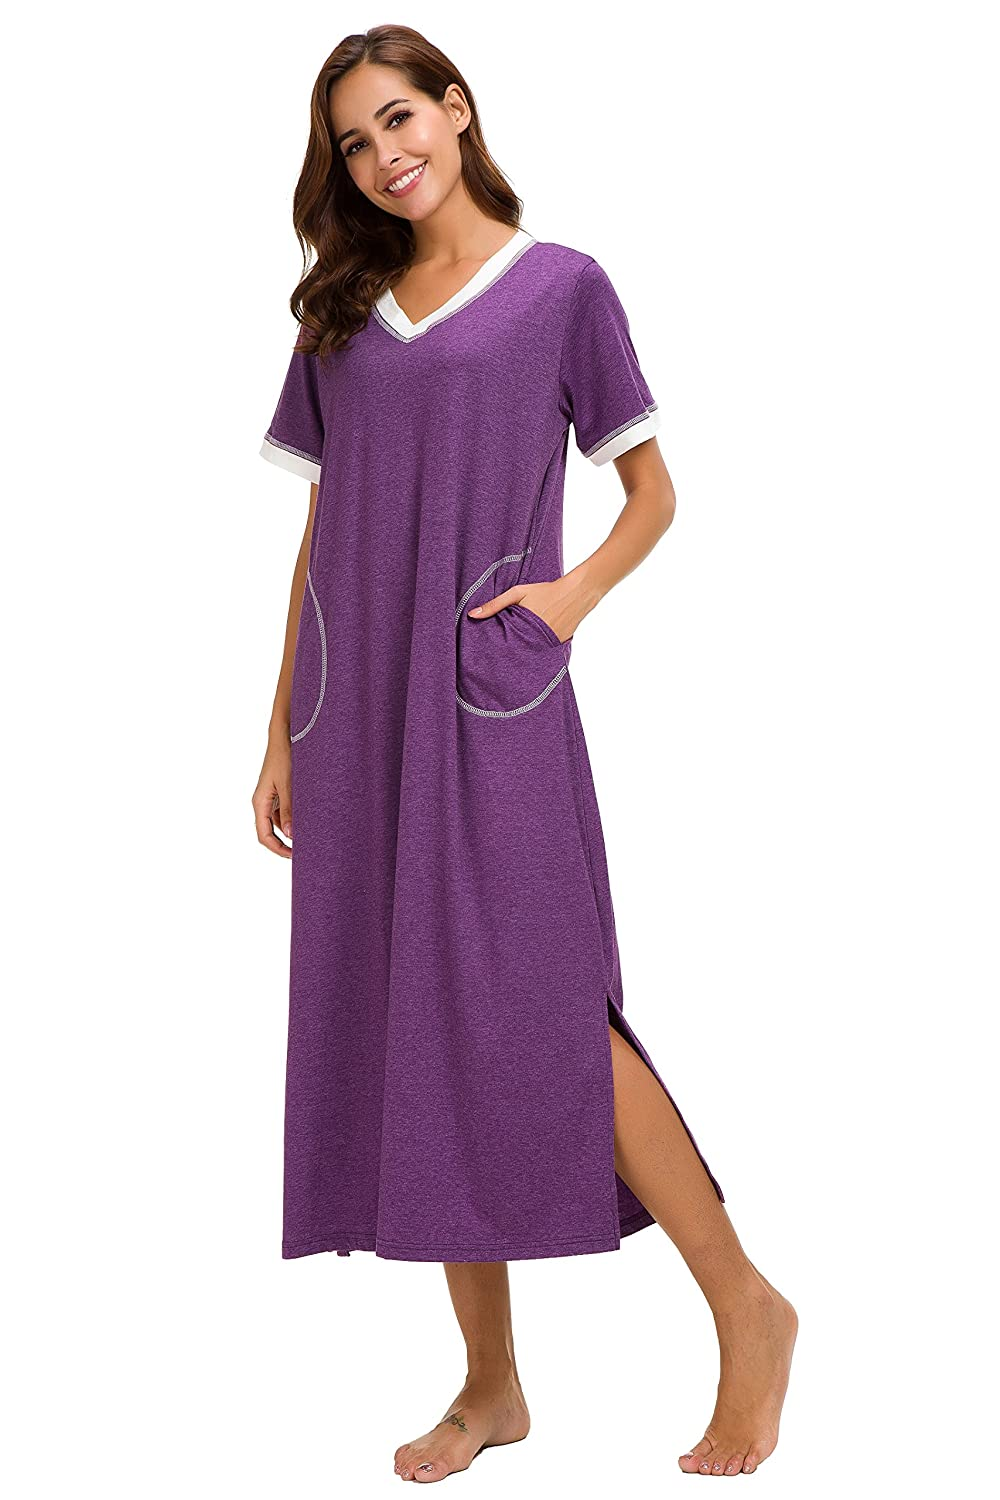 Supermamas Long Nightgown Womens Cotton Knit Short Sleeve Nightshirt with Pockets S-XXL YZ003